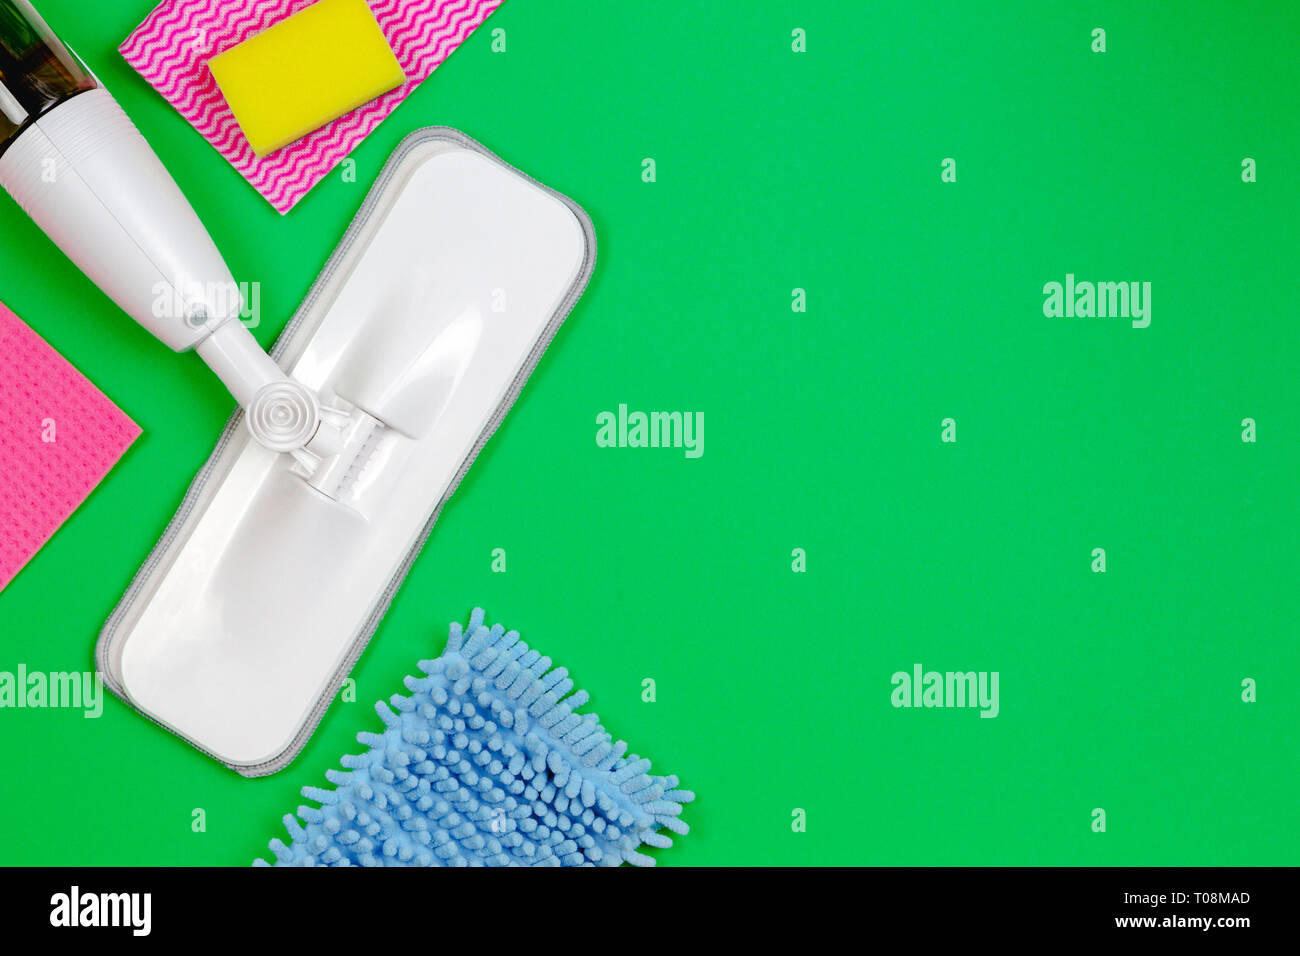 Housework, housekeeping, household, cleaning service concept. Cleaning spray mop with rags and sponges on green background - Stock Image